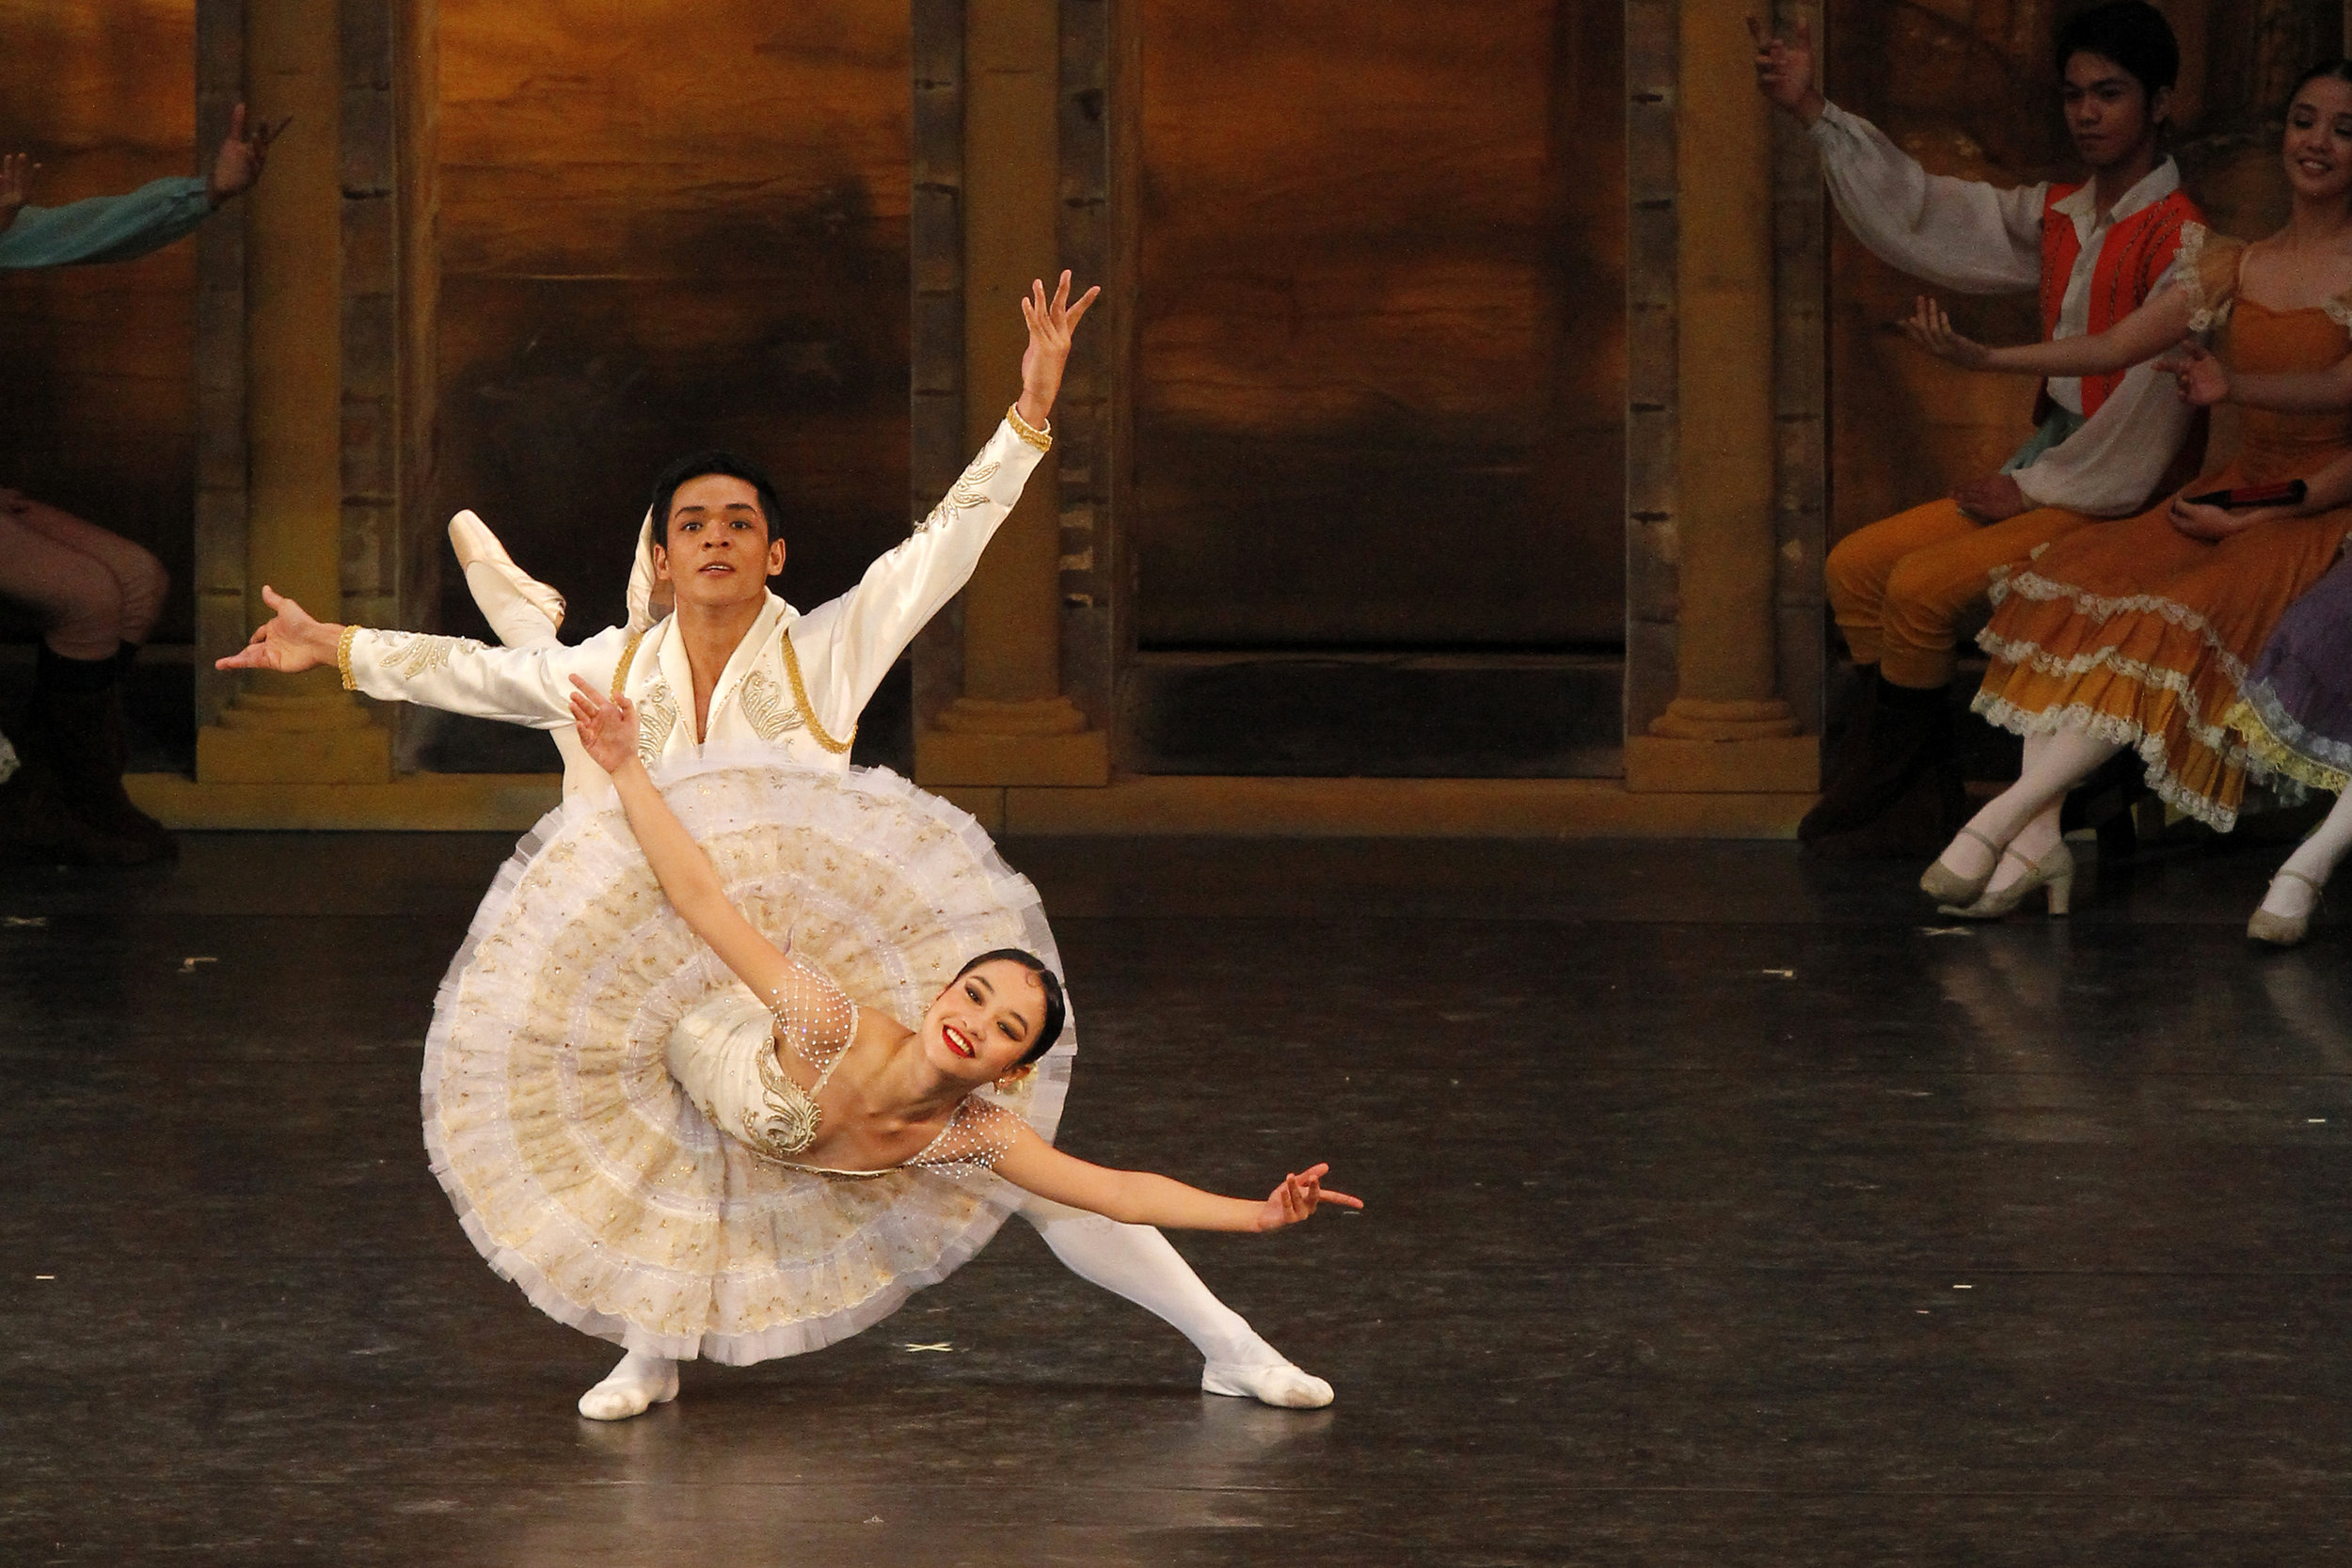 Pia Dames is known for her fearlessness on stage. In this photo, she performs the fiery Kitri in  Don Quixote  with principal dancer      Gerardo Francisco      as her Basilio. Photo by Ocs Alvarez